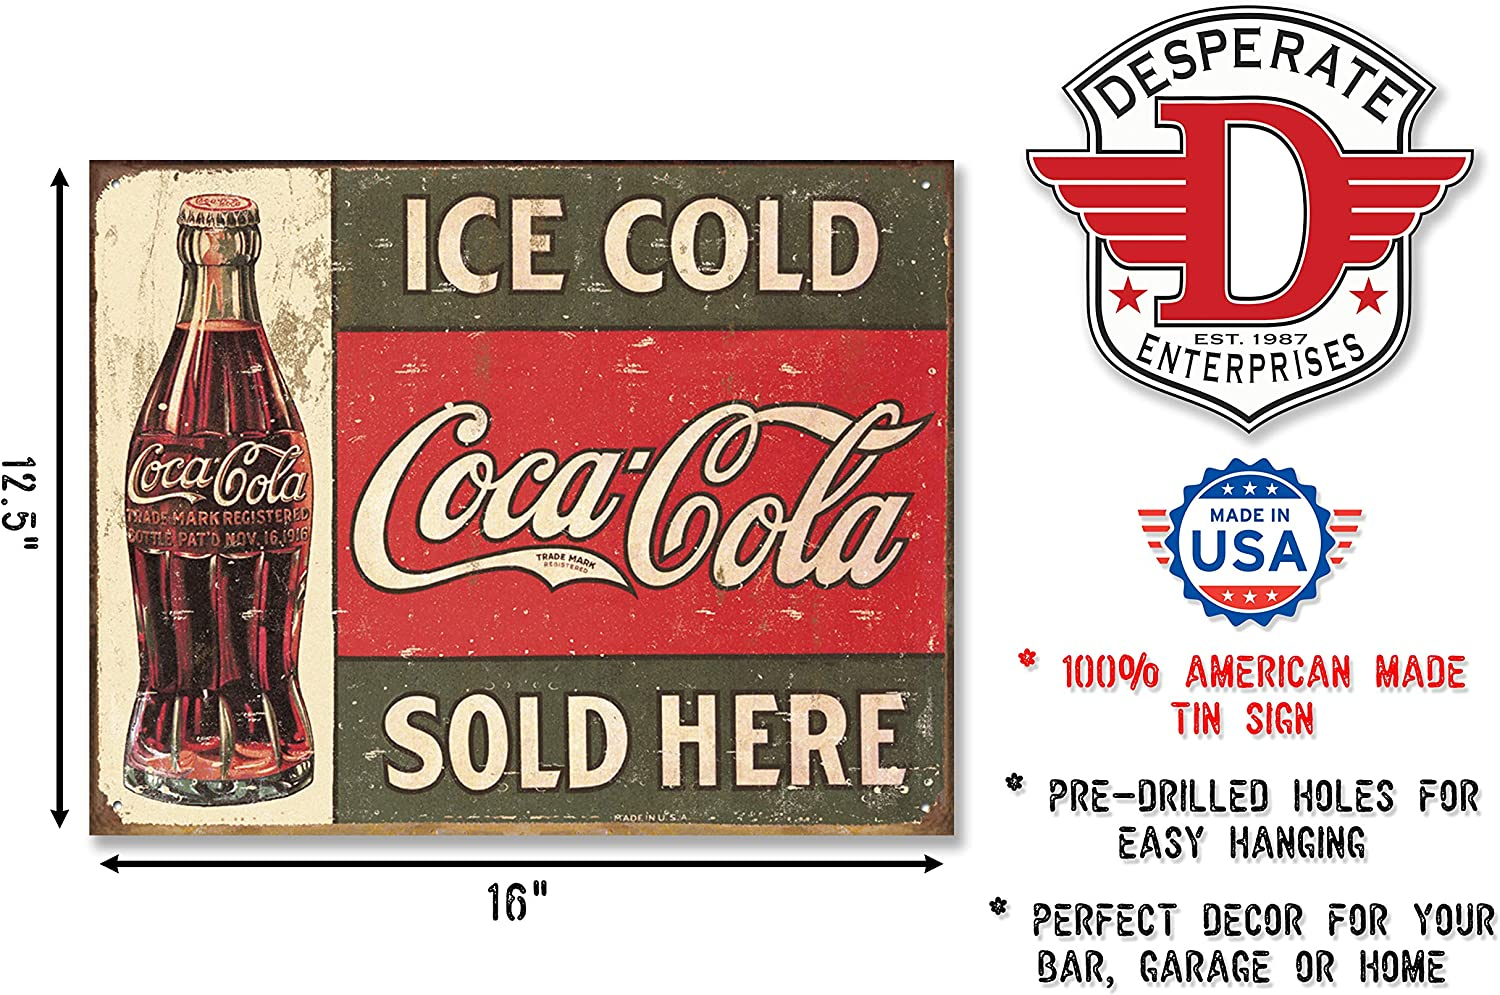 FACTORY ANTIQUED DESPERATE IND ICE COLD COCA COLA AS ALWAYS 5 CENTS METAL SIGN